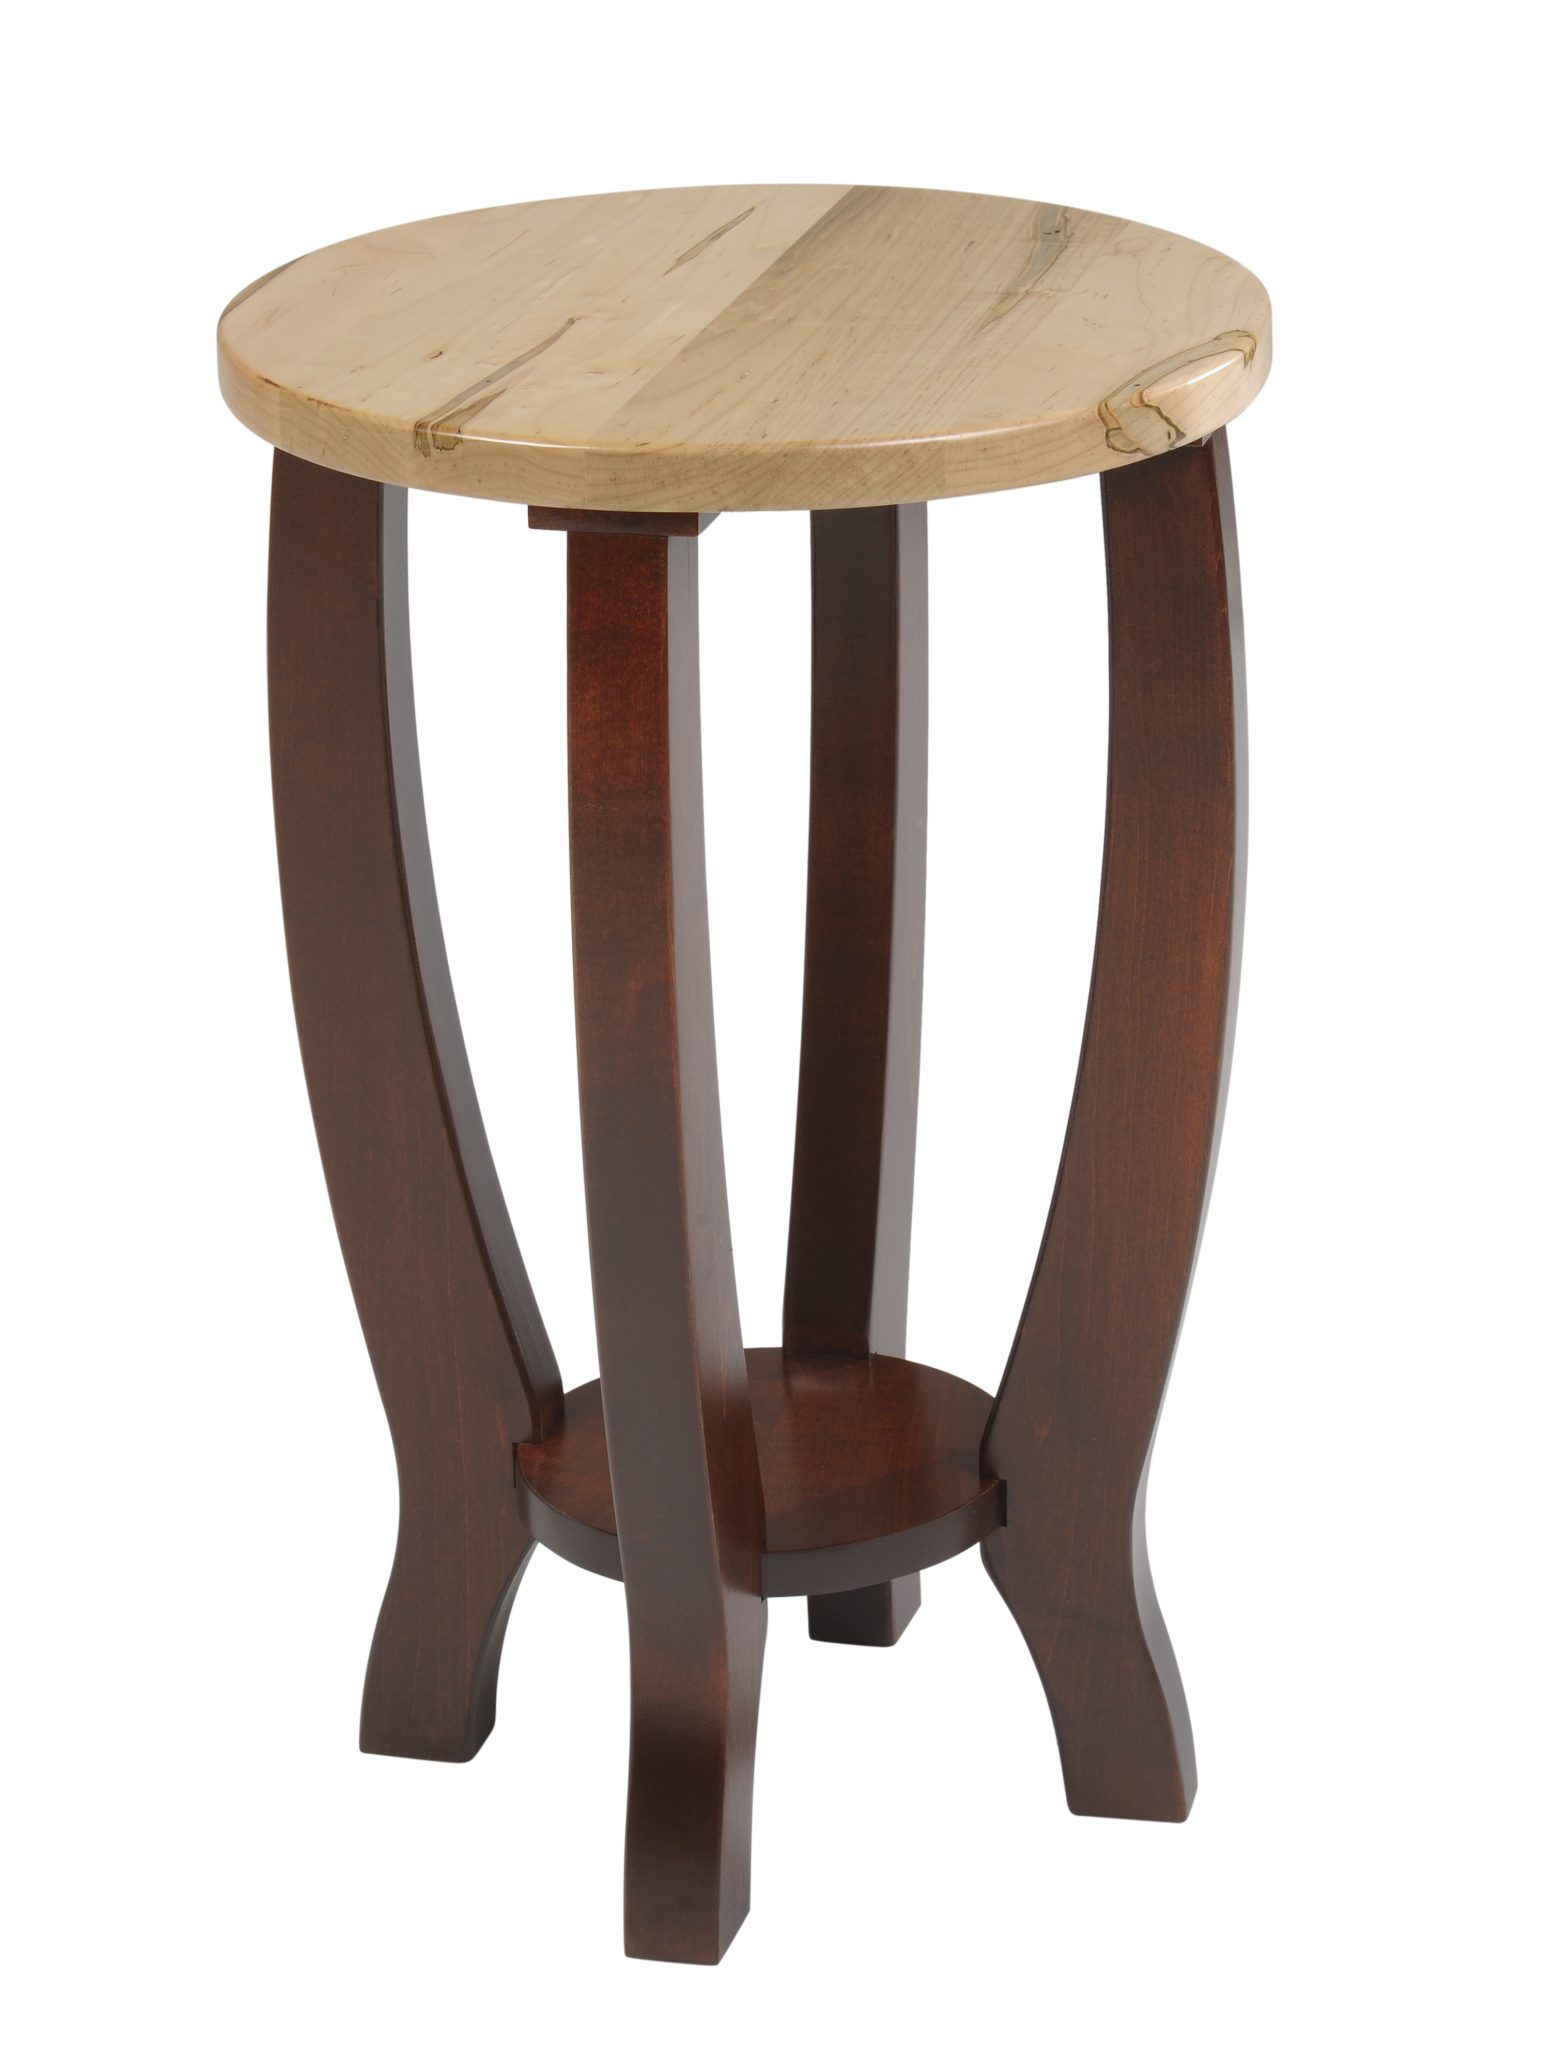 YT240 New Port Round Chairside END Table Amish Two Tone Occasional Round Tables  End